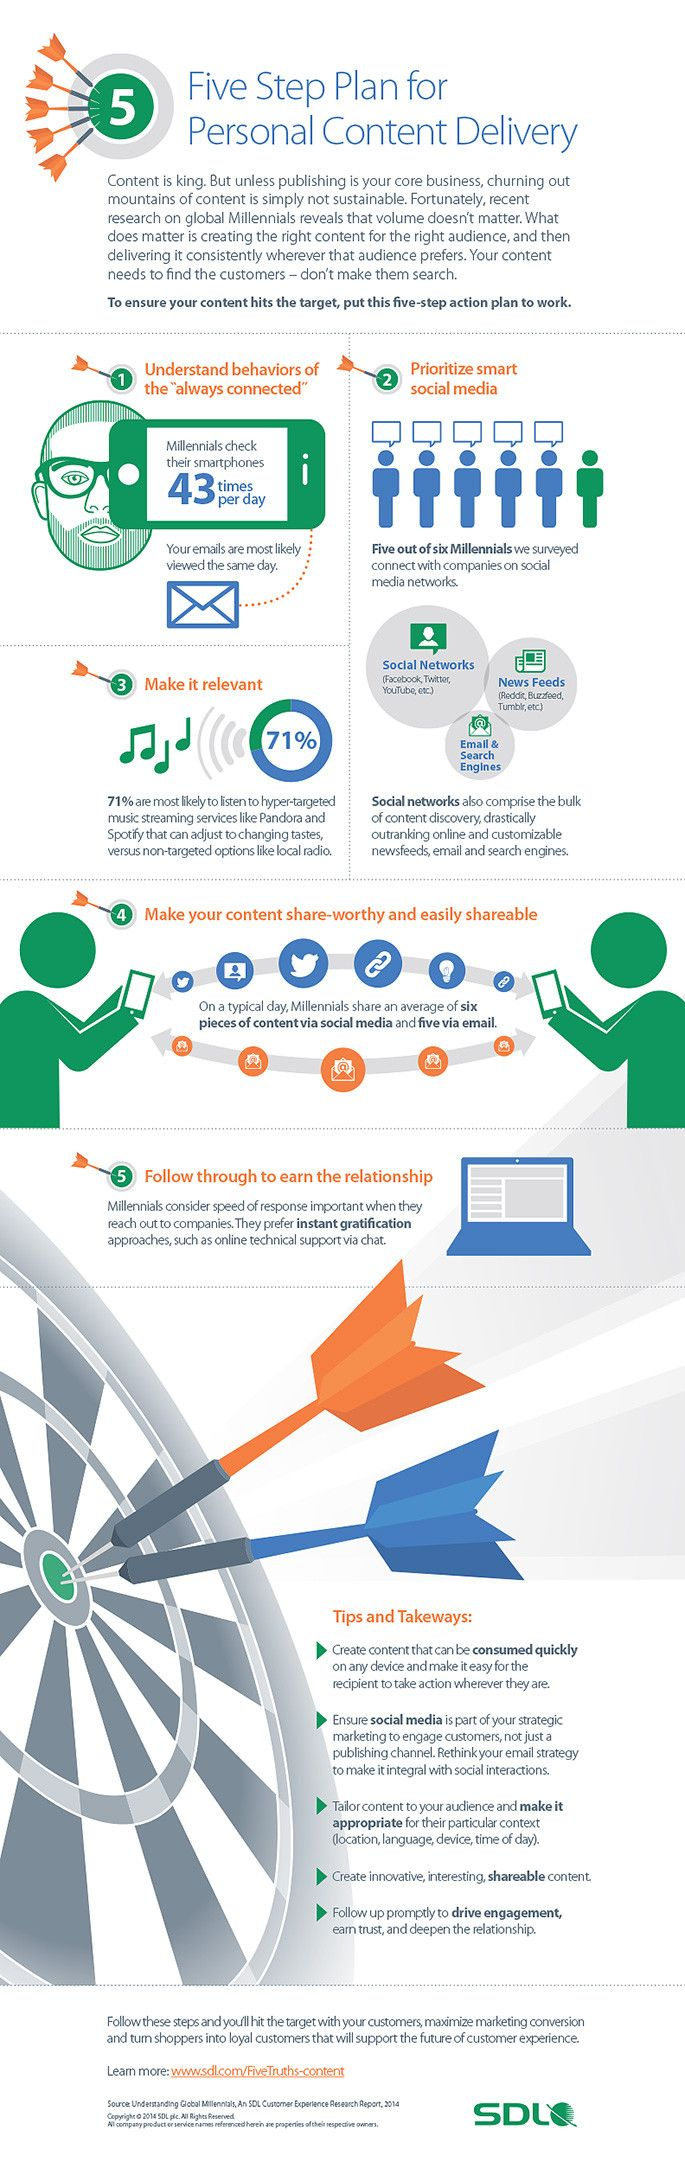 Infographic: Five Step Plan for Personal Content Delivery #infographic